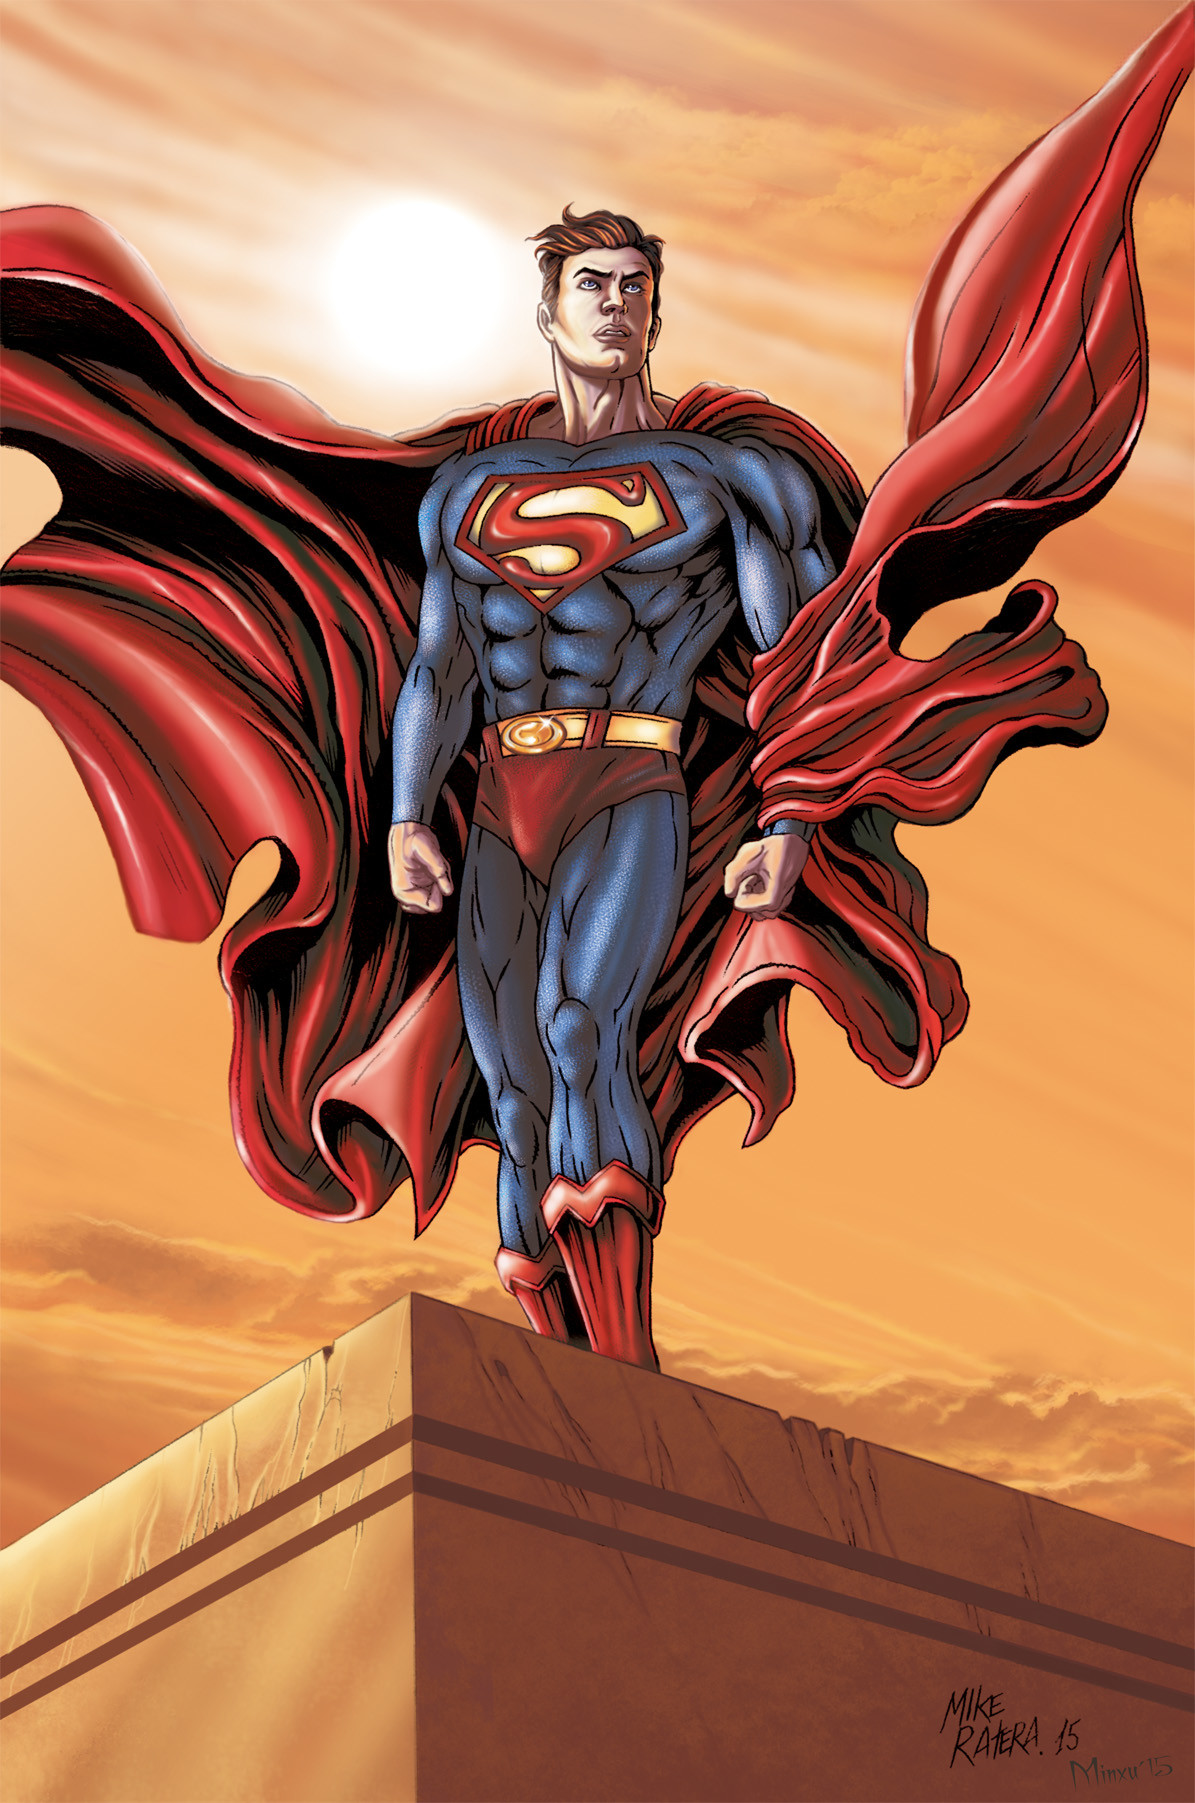 Mike ratera superman color